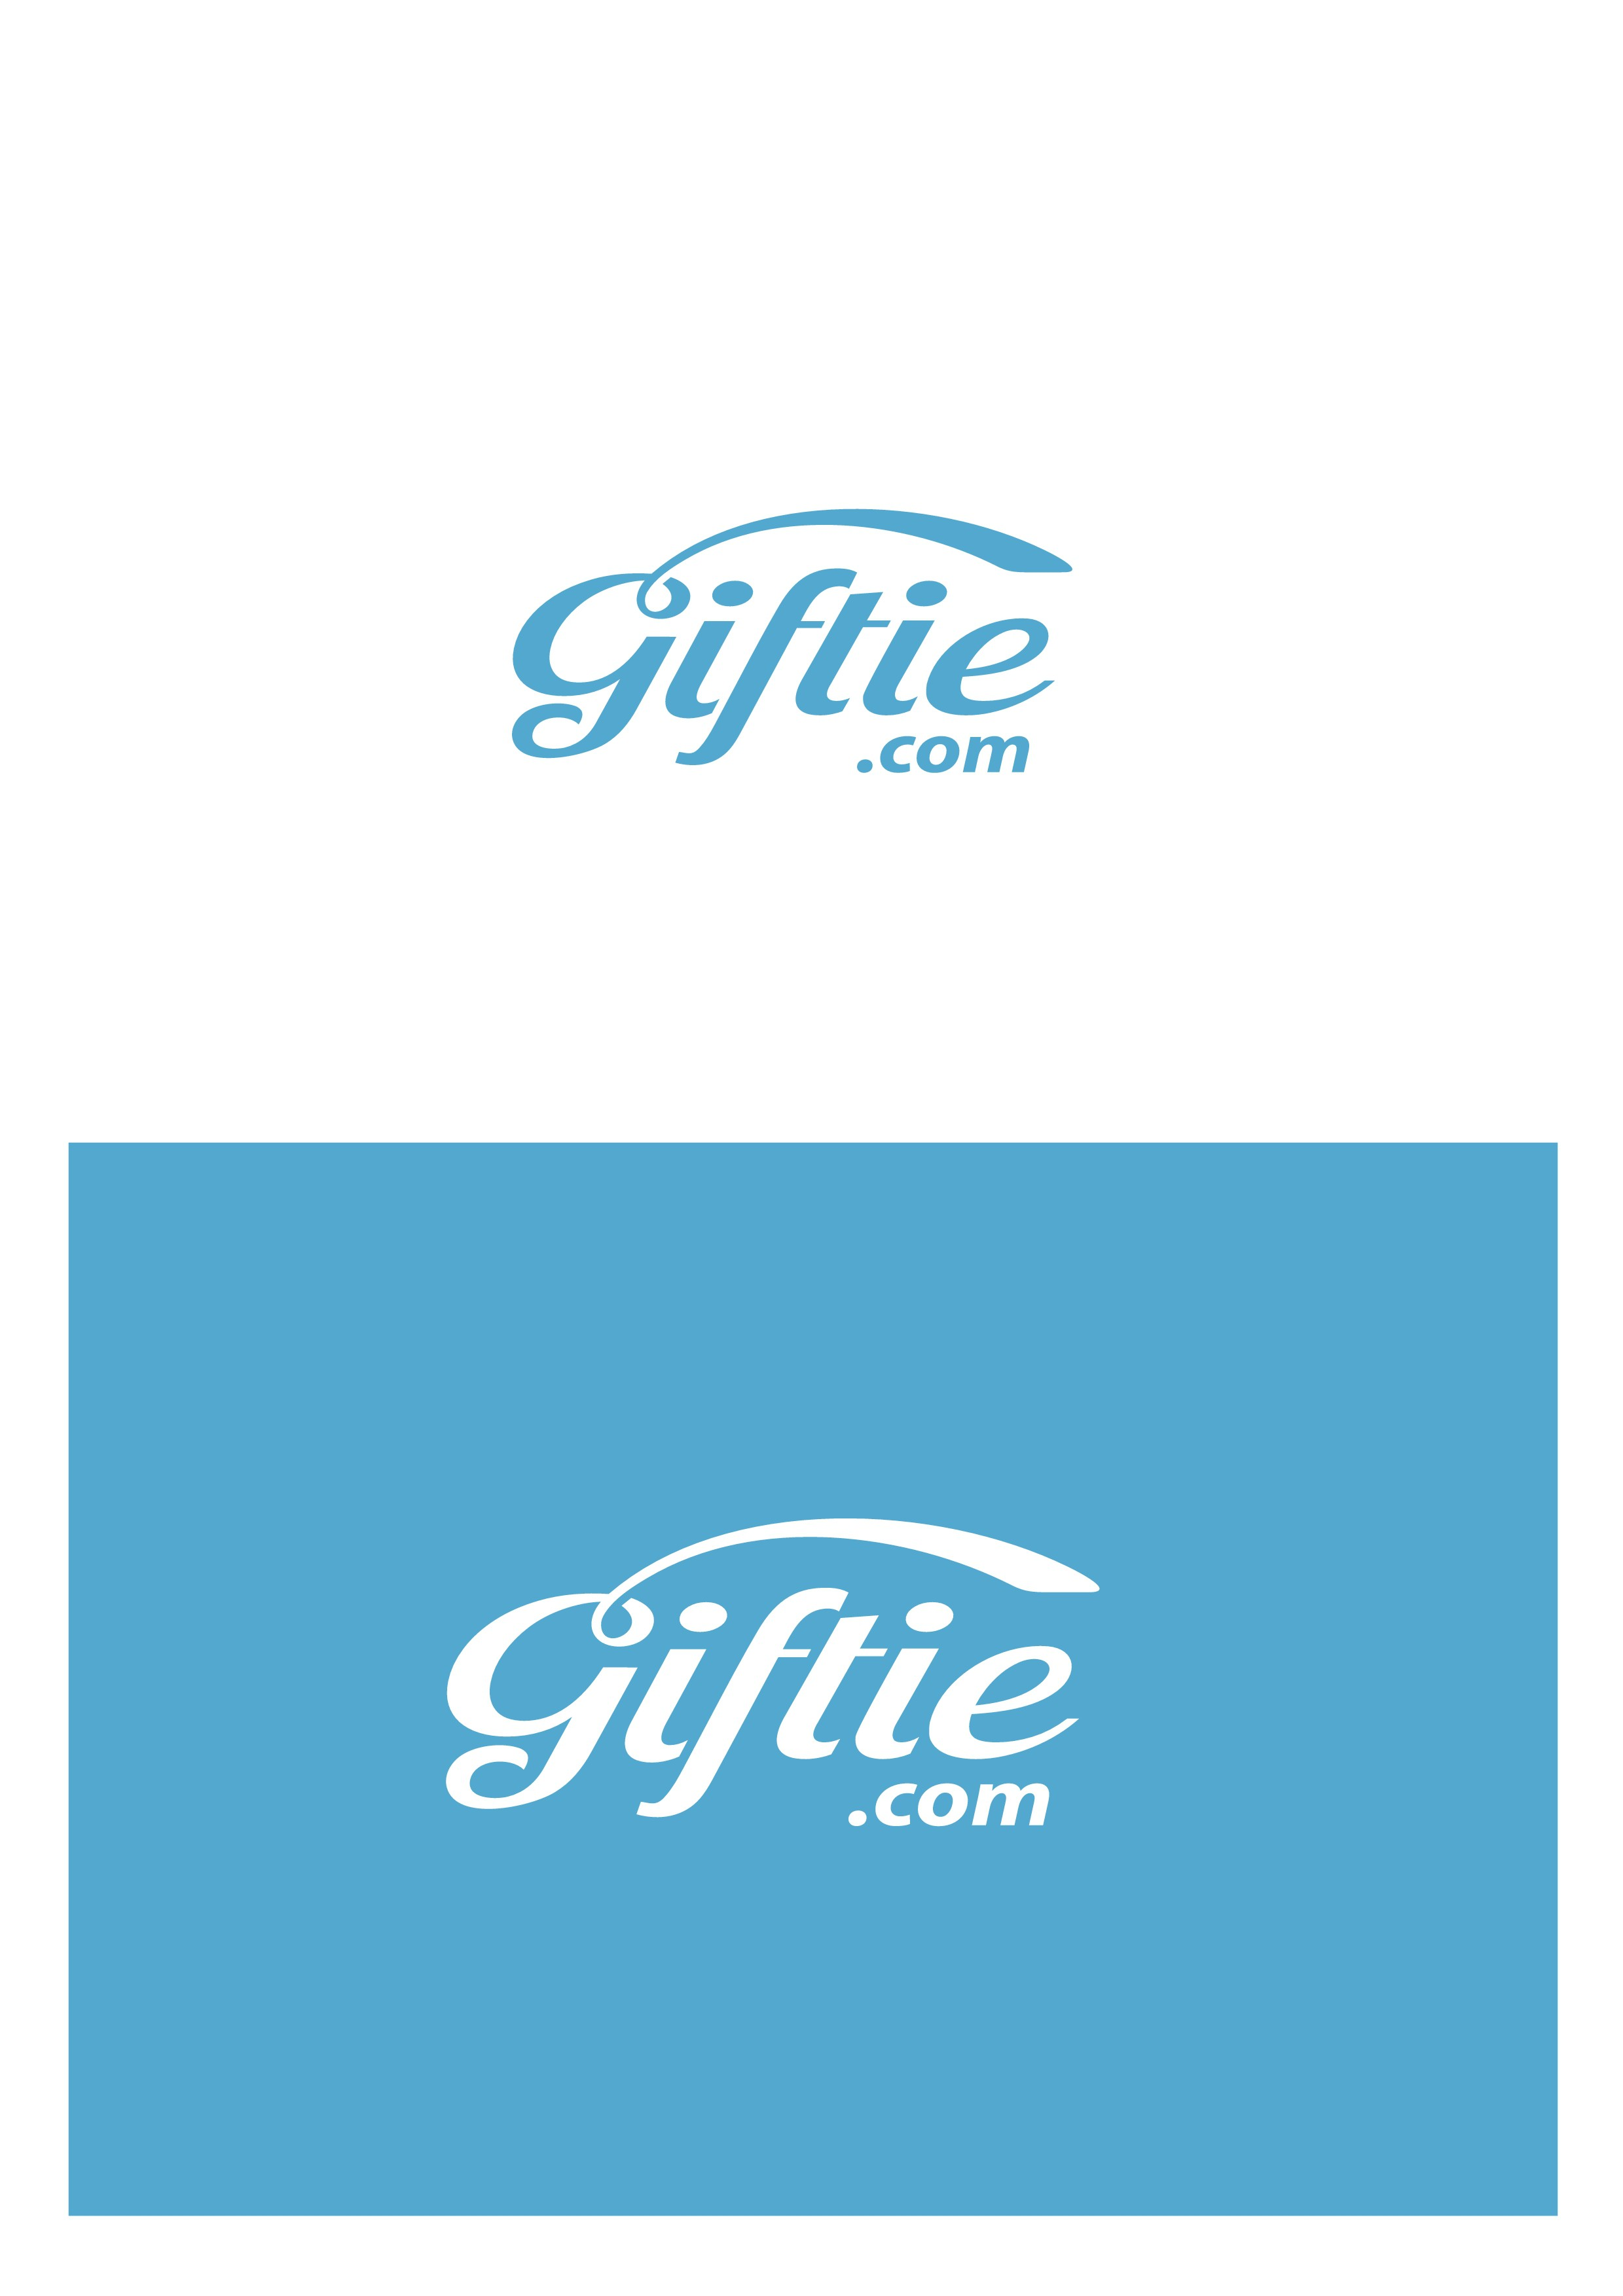 Create a logo for Giftie, a cool new e-commerce gifting site!